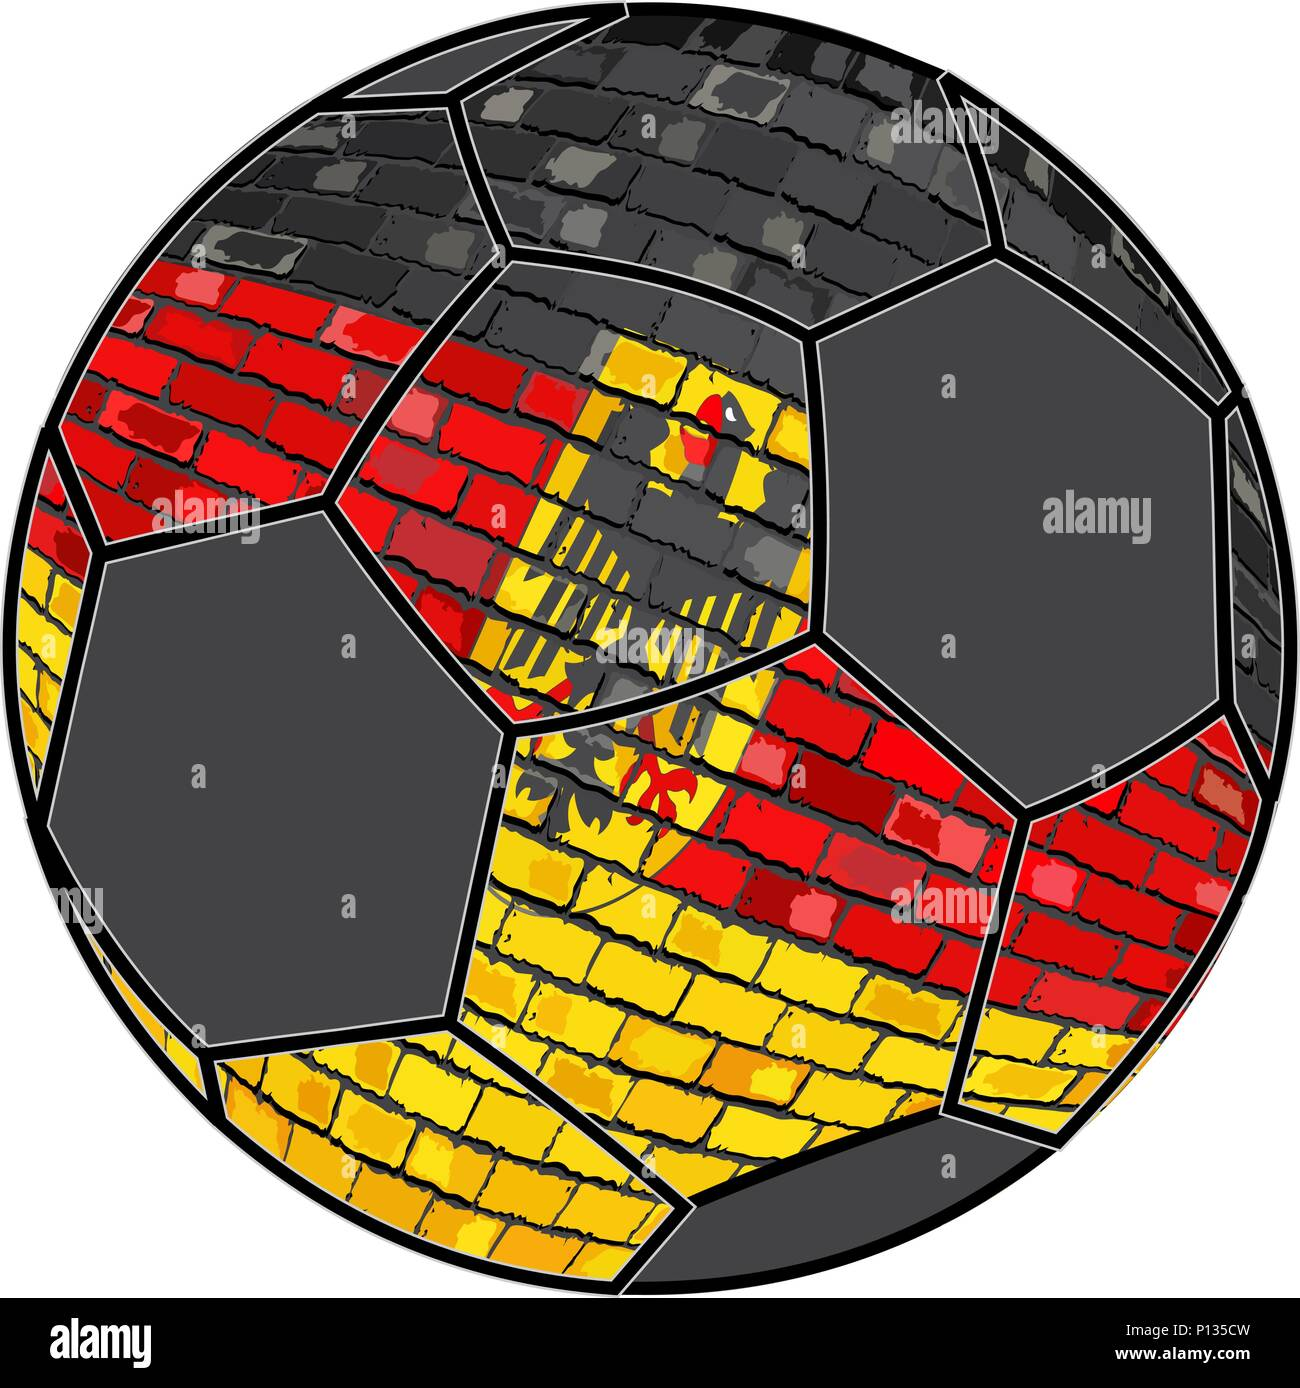 Germany flag with soccer ball background - Illustration,  Soccer football ball with Germany flag,  Deutschland flag in brick style - Stock Vector